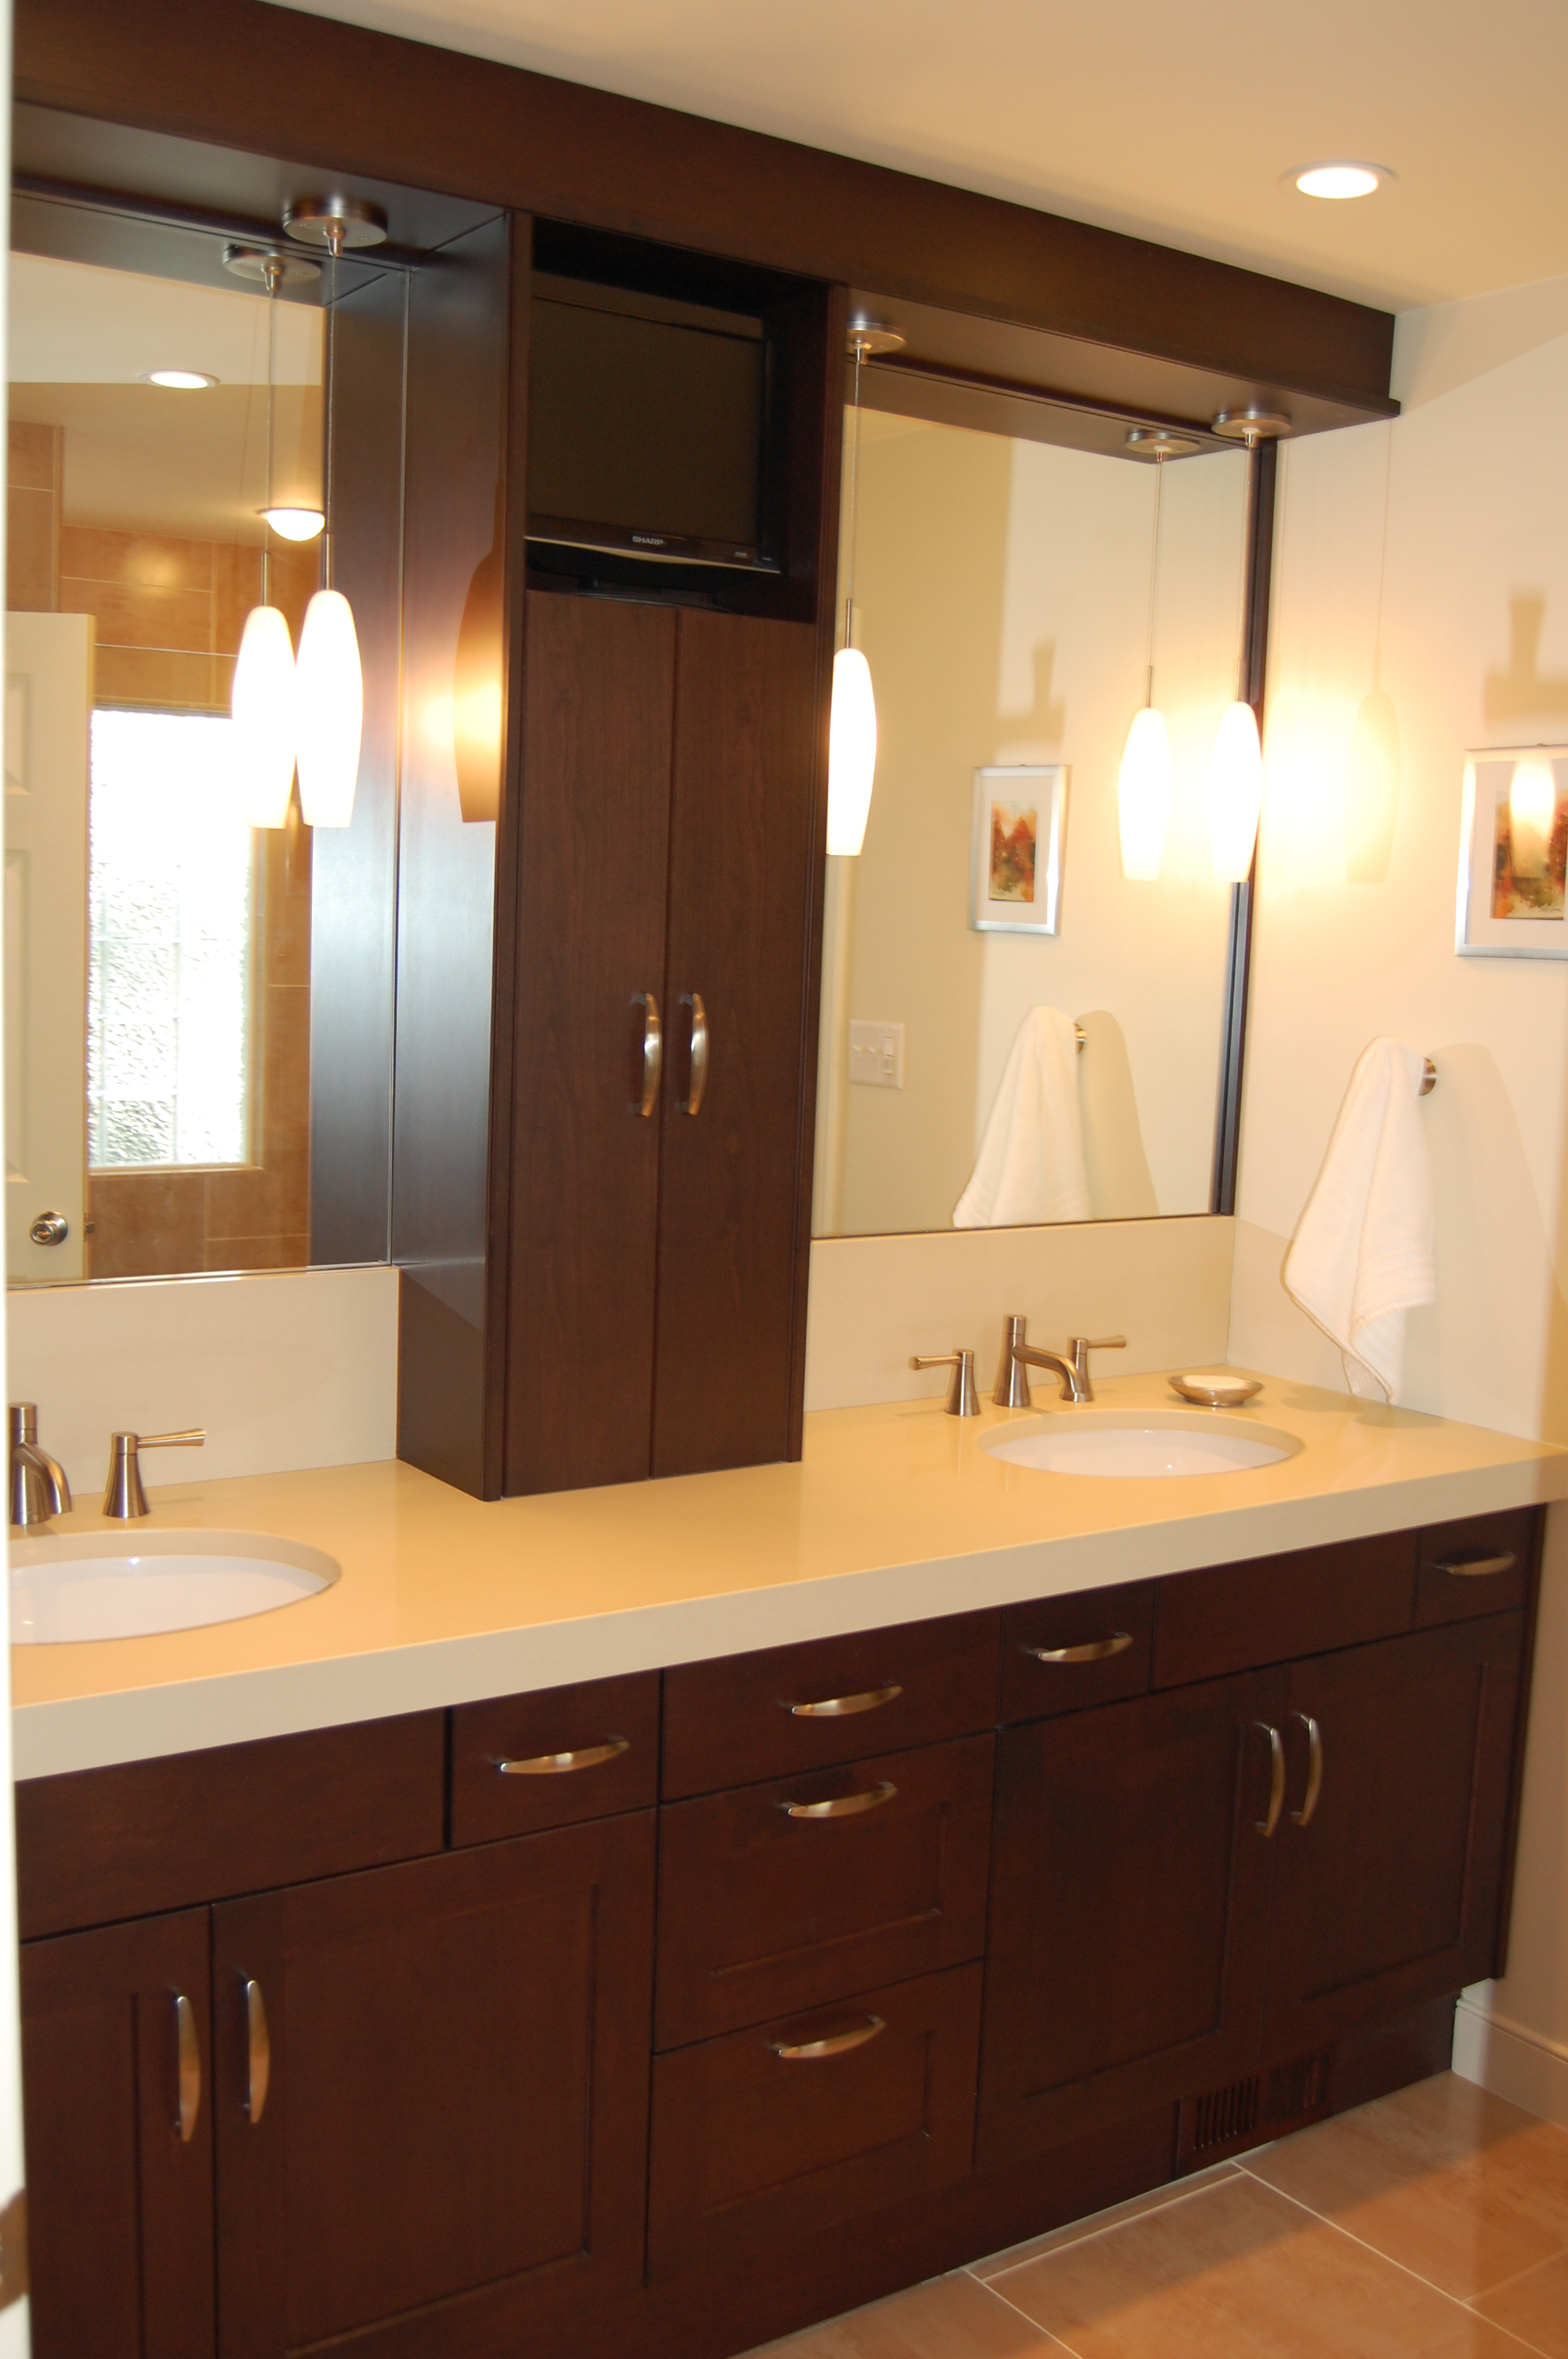 Bathroom Remodeling Richmond Va portfolio - classic kitchens of virginia